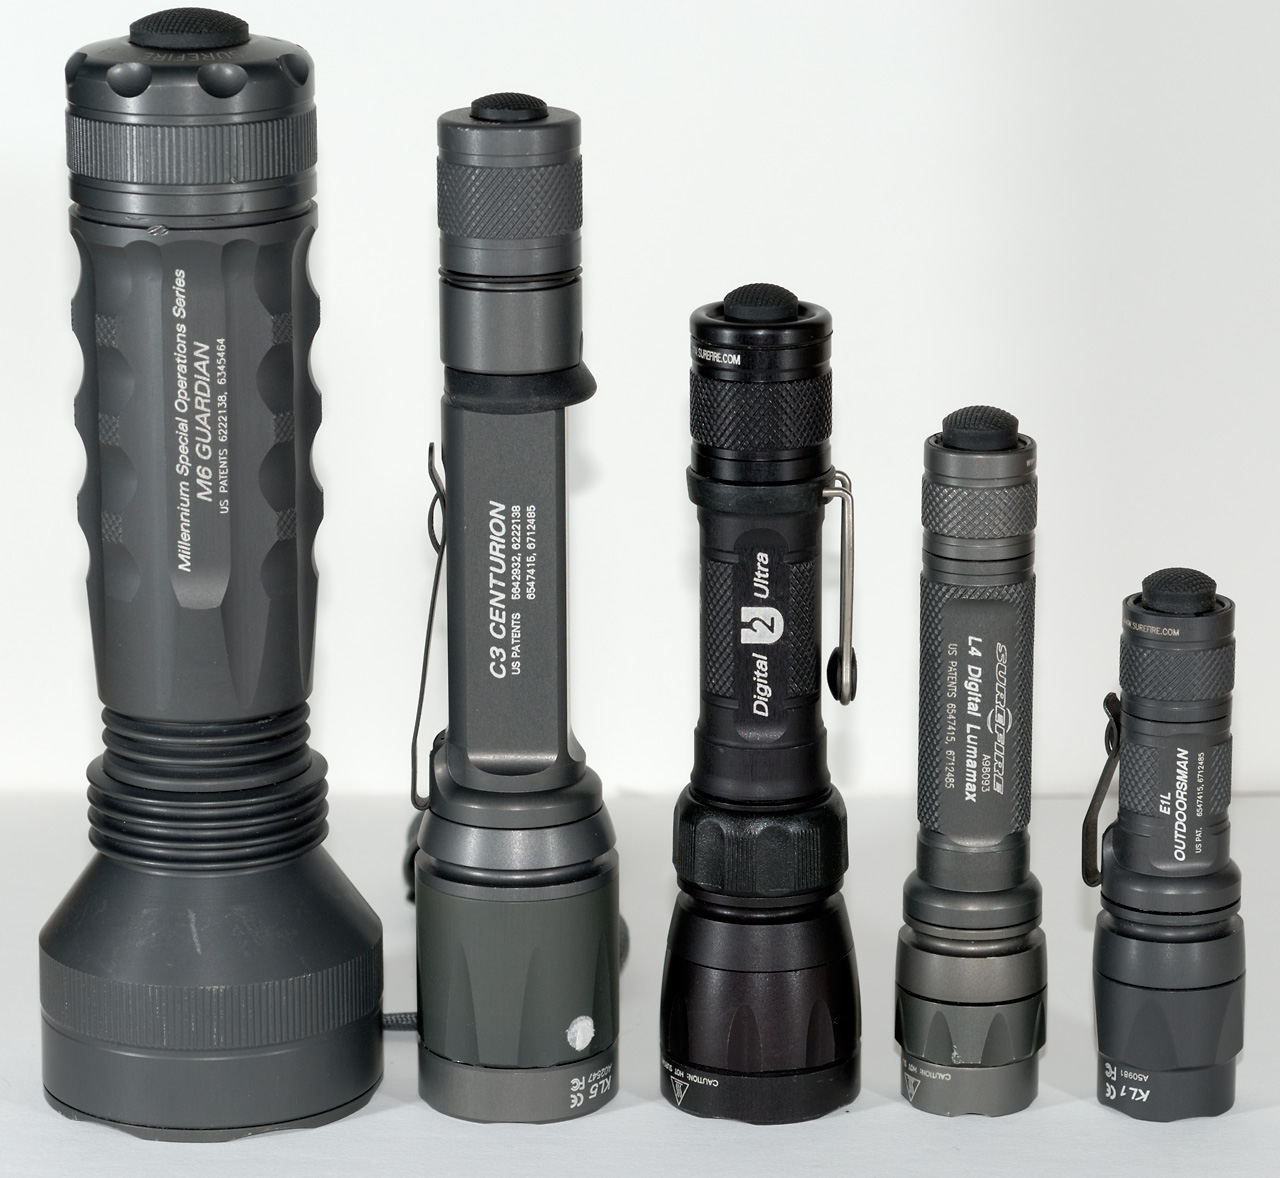 us tpt cowboy tmt products lights sz lighting illumination tactical canada and flash flashlights safes